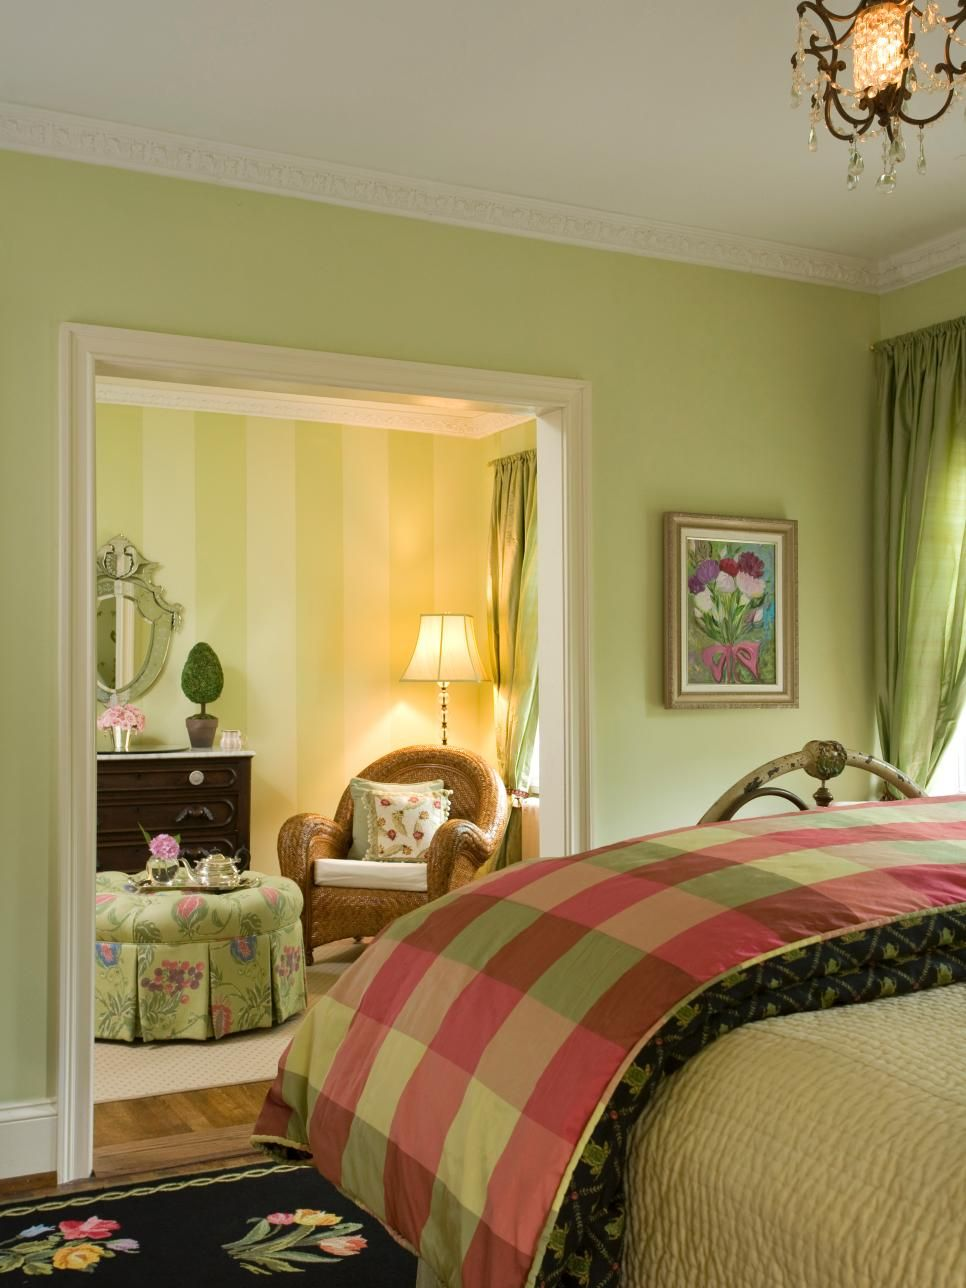 Bedroom Wall Colors must-see spring color trends | hgtv, bedrooms and spaces